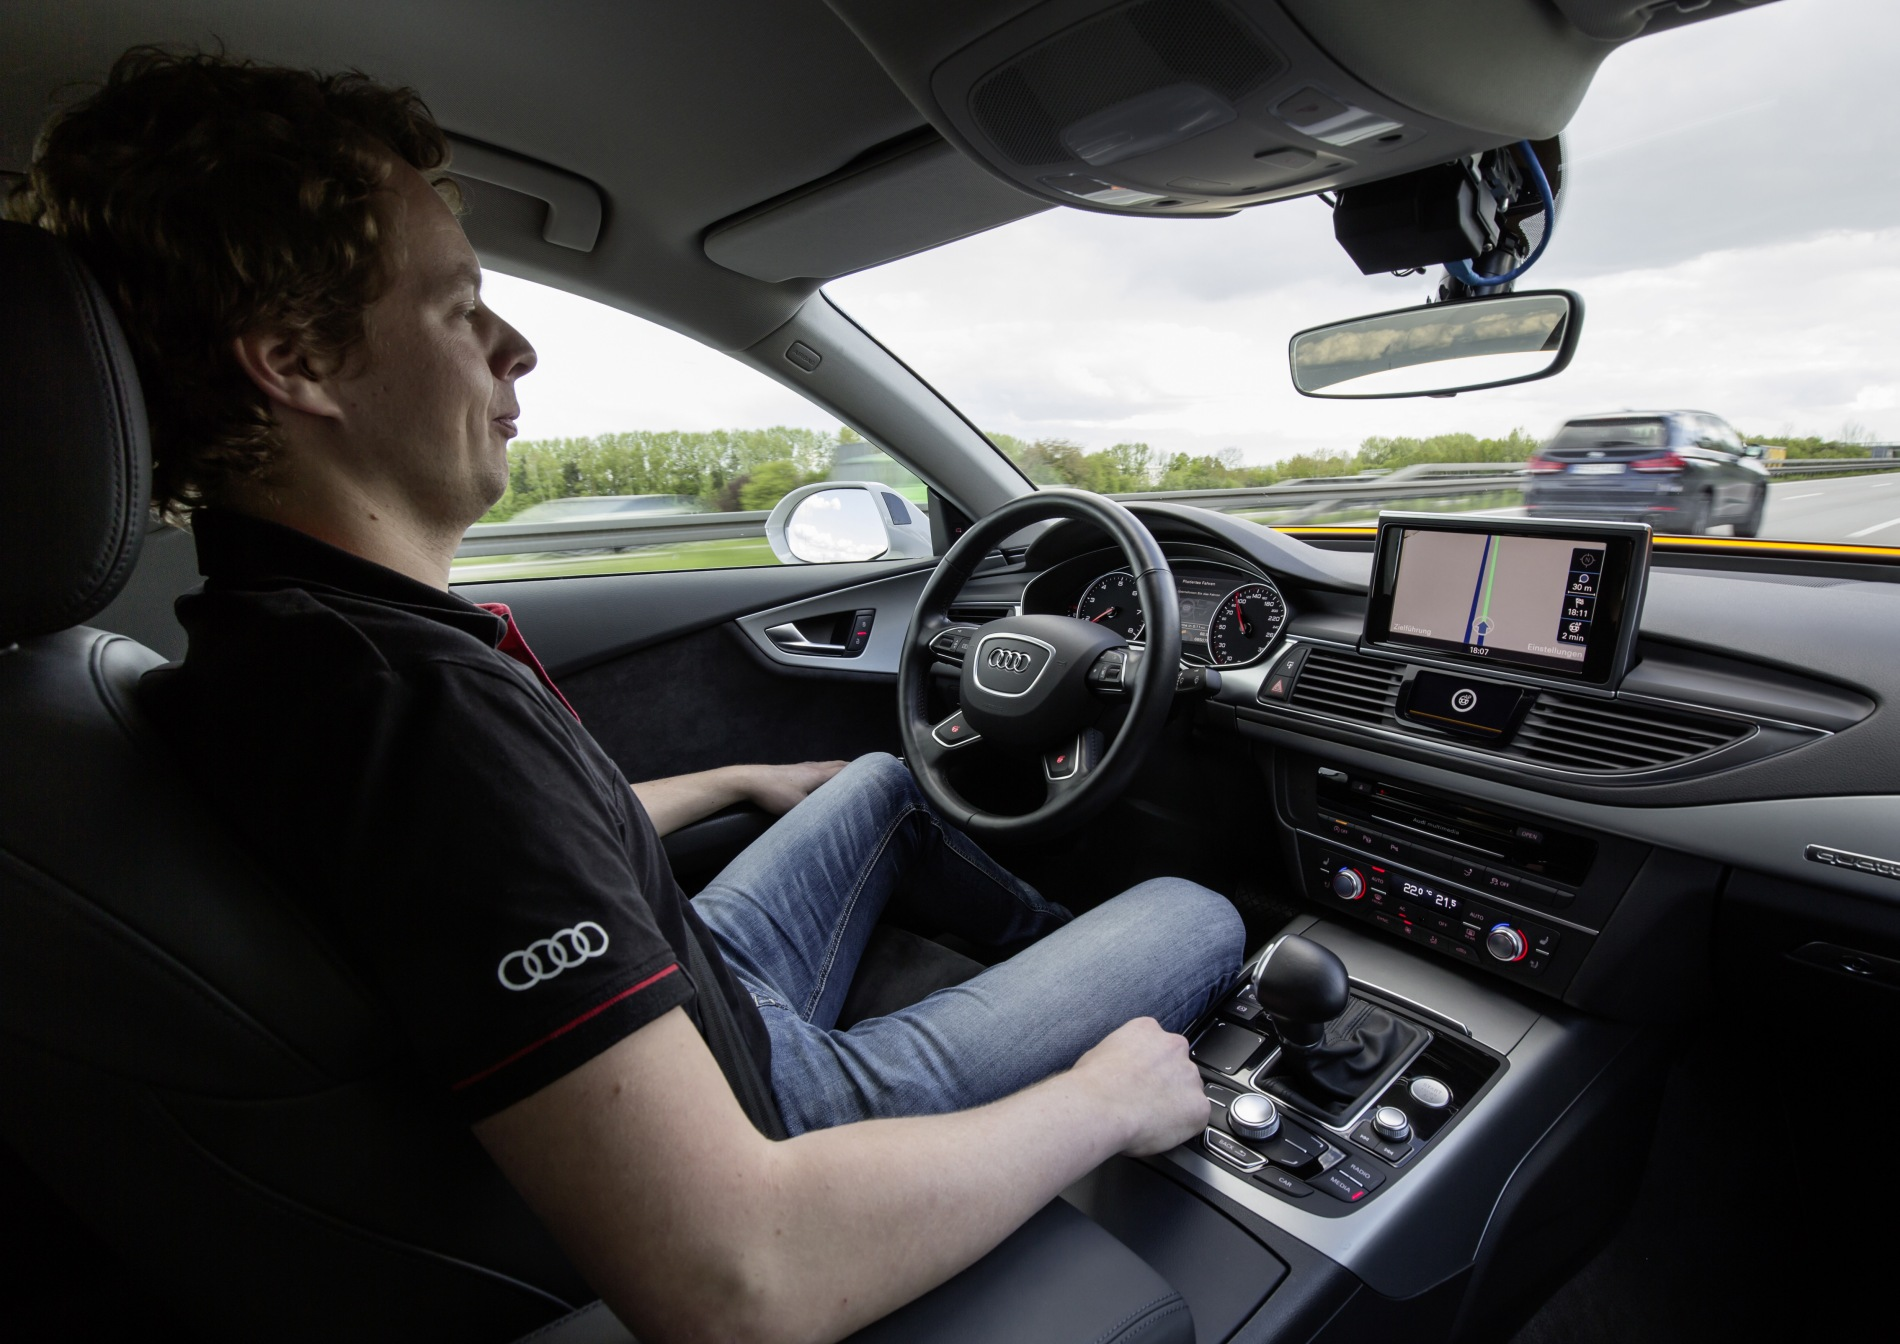 Audi Pioneers New Technologies For Piloted Driving Tires Parts News - Audi piloted driving